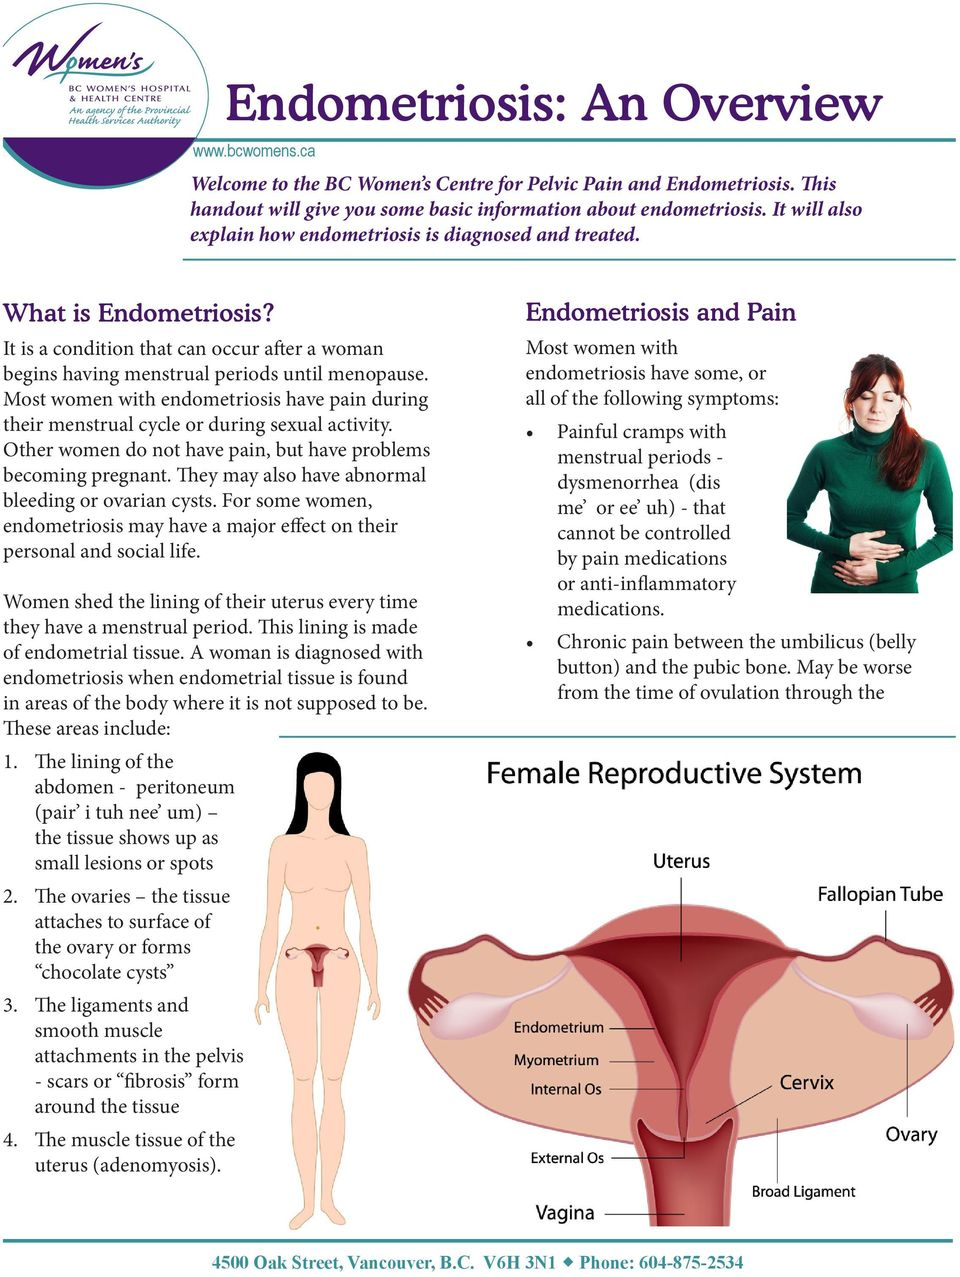 Most women with endometriosis have pain during their menstrual cycle or during sexual activity. Other women do not have pain, but have problems becoming pregnant.